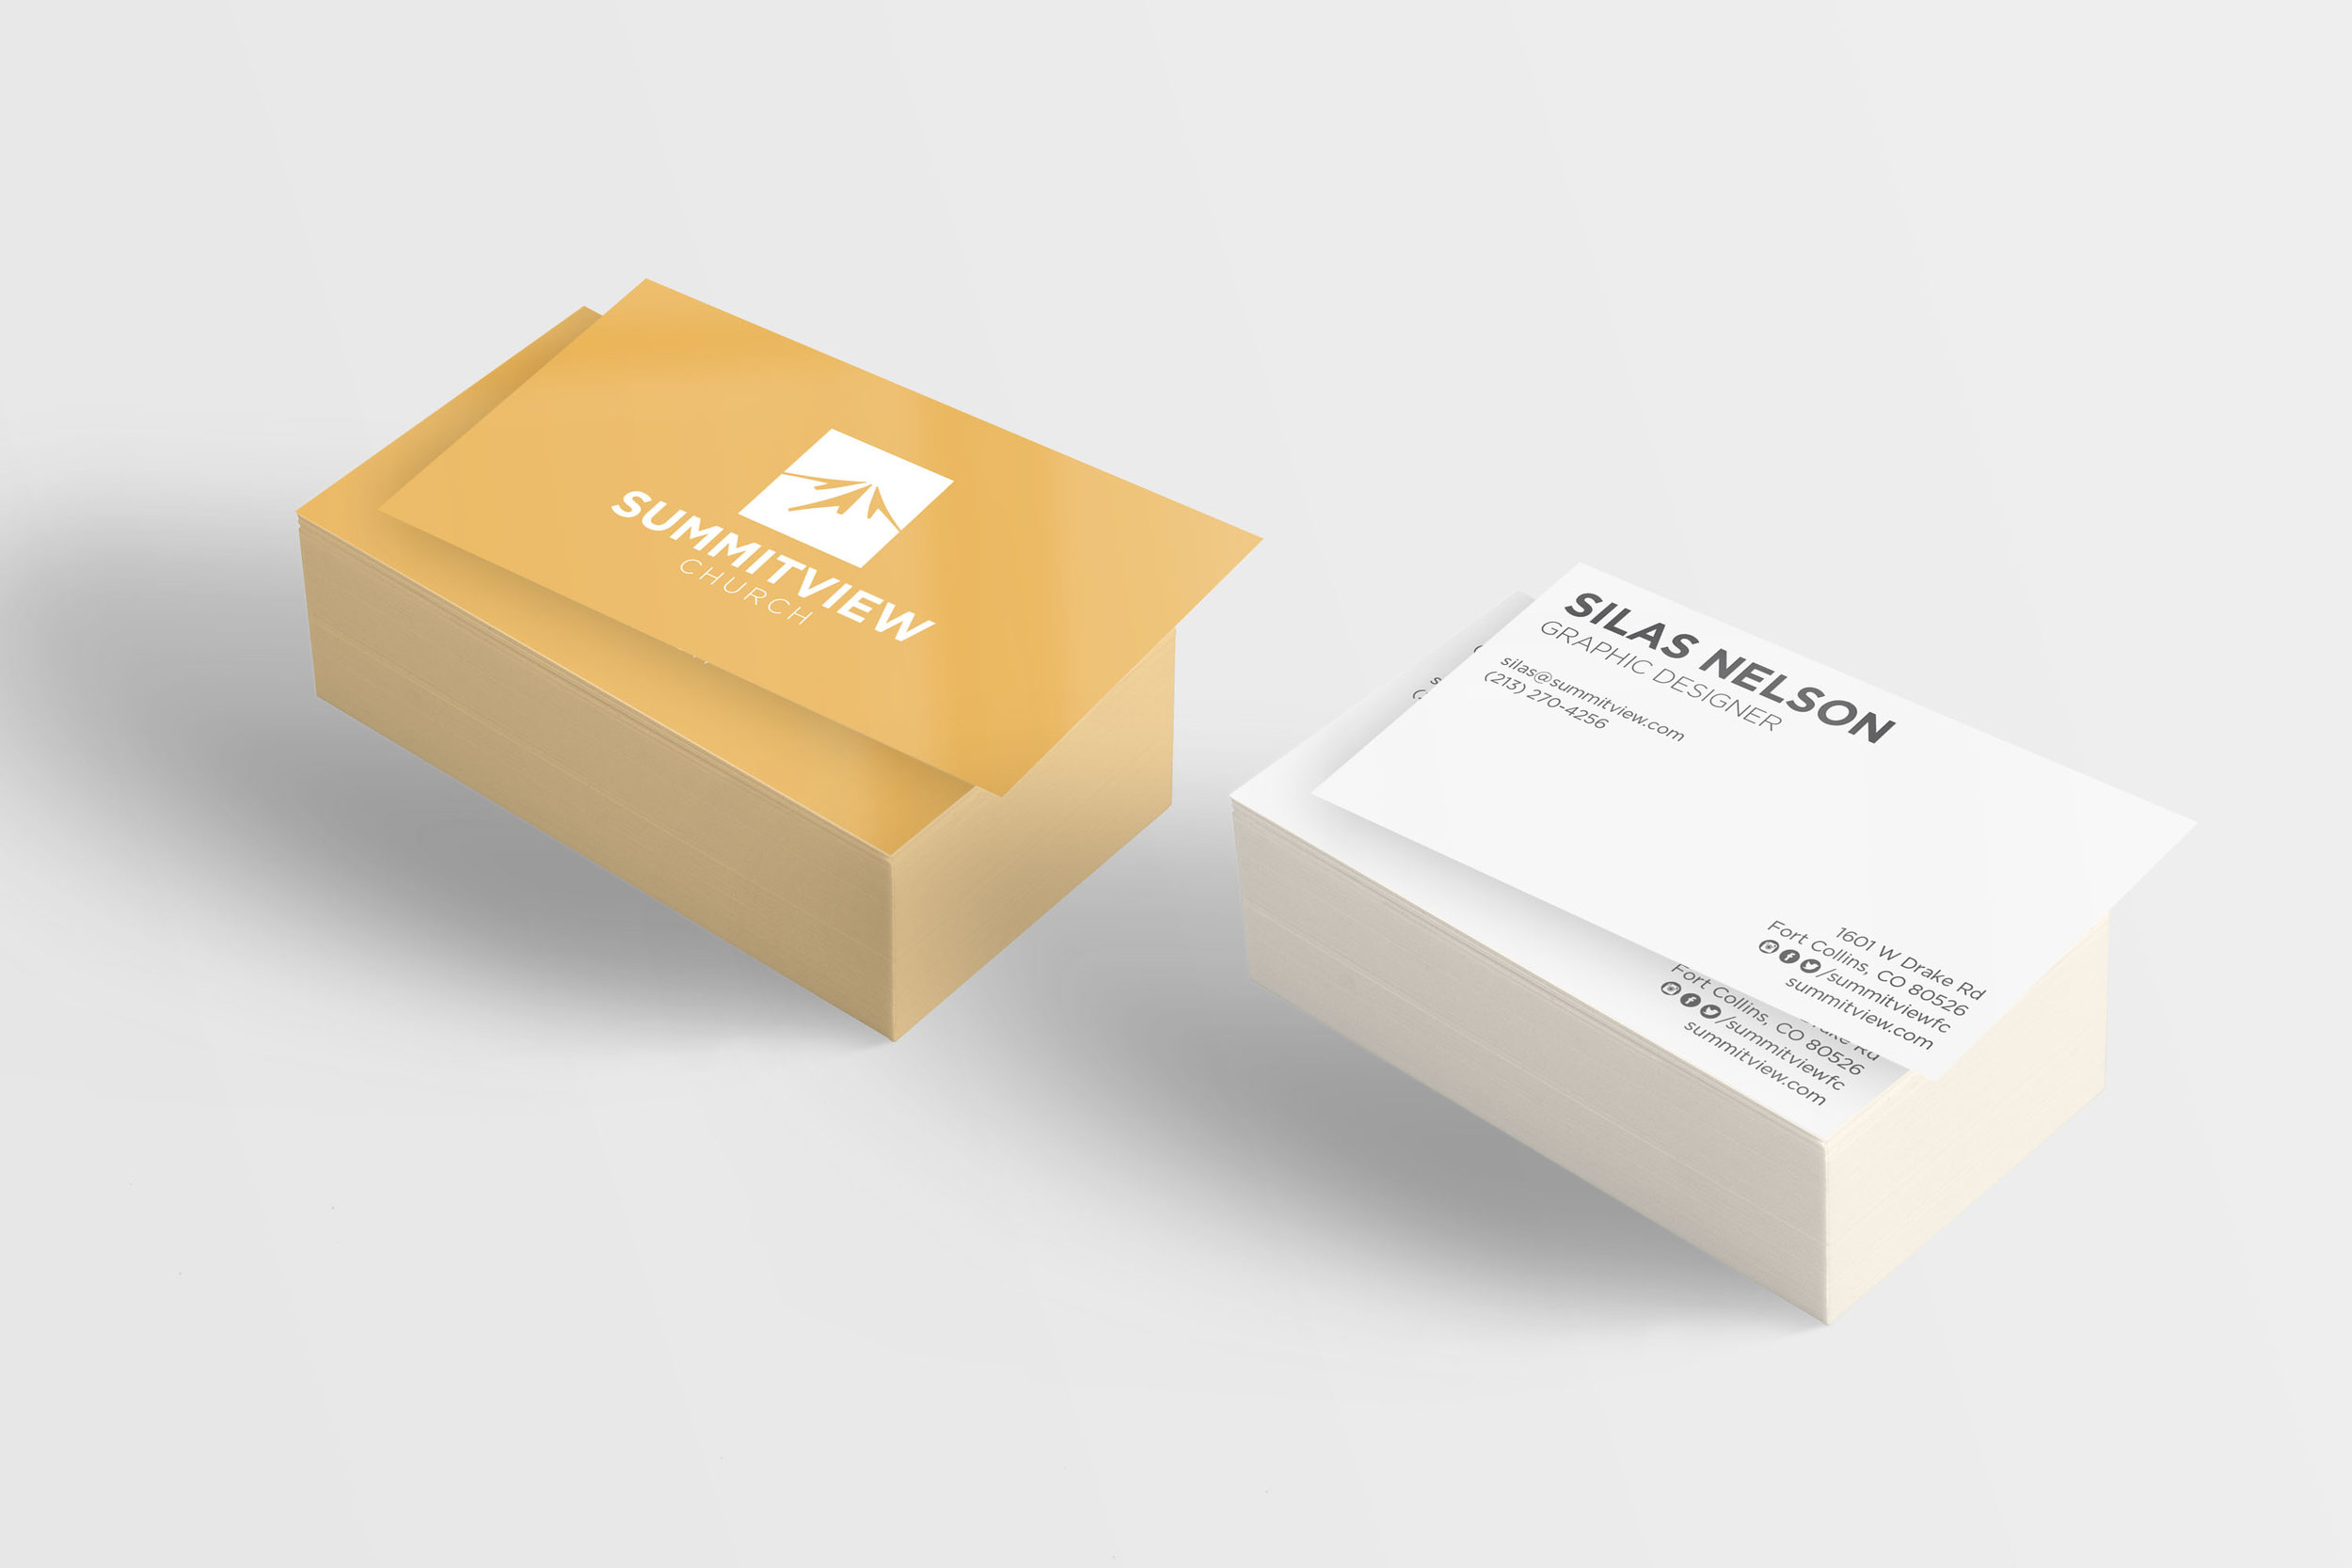 personal business cards.jpg